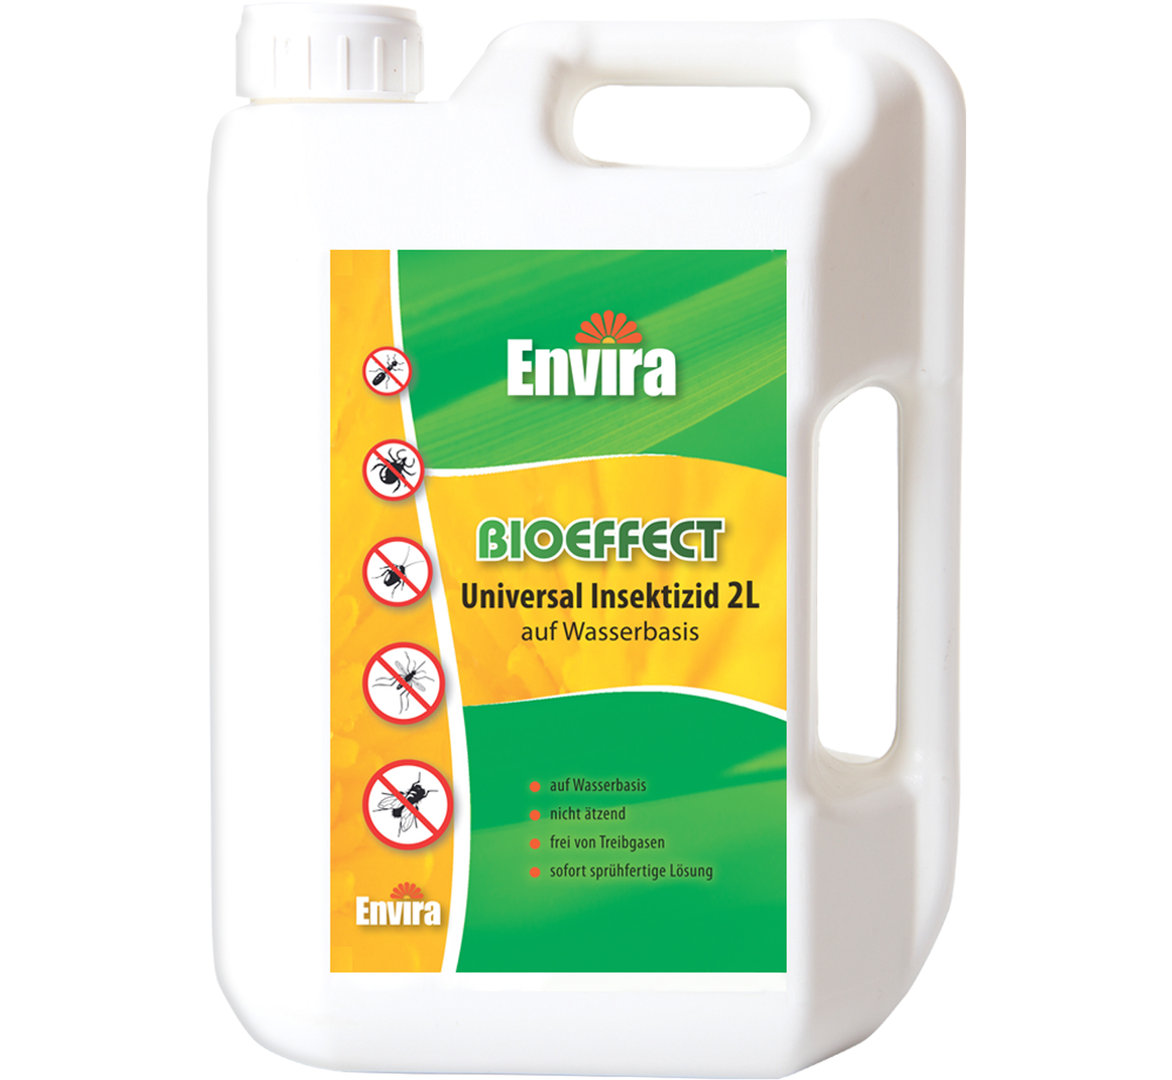 mittel gegen insekten envira bioeffect 3x2ltr top k o wirkung. Black Bedroom Furniture Sets. Home Design Ideas